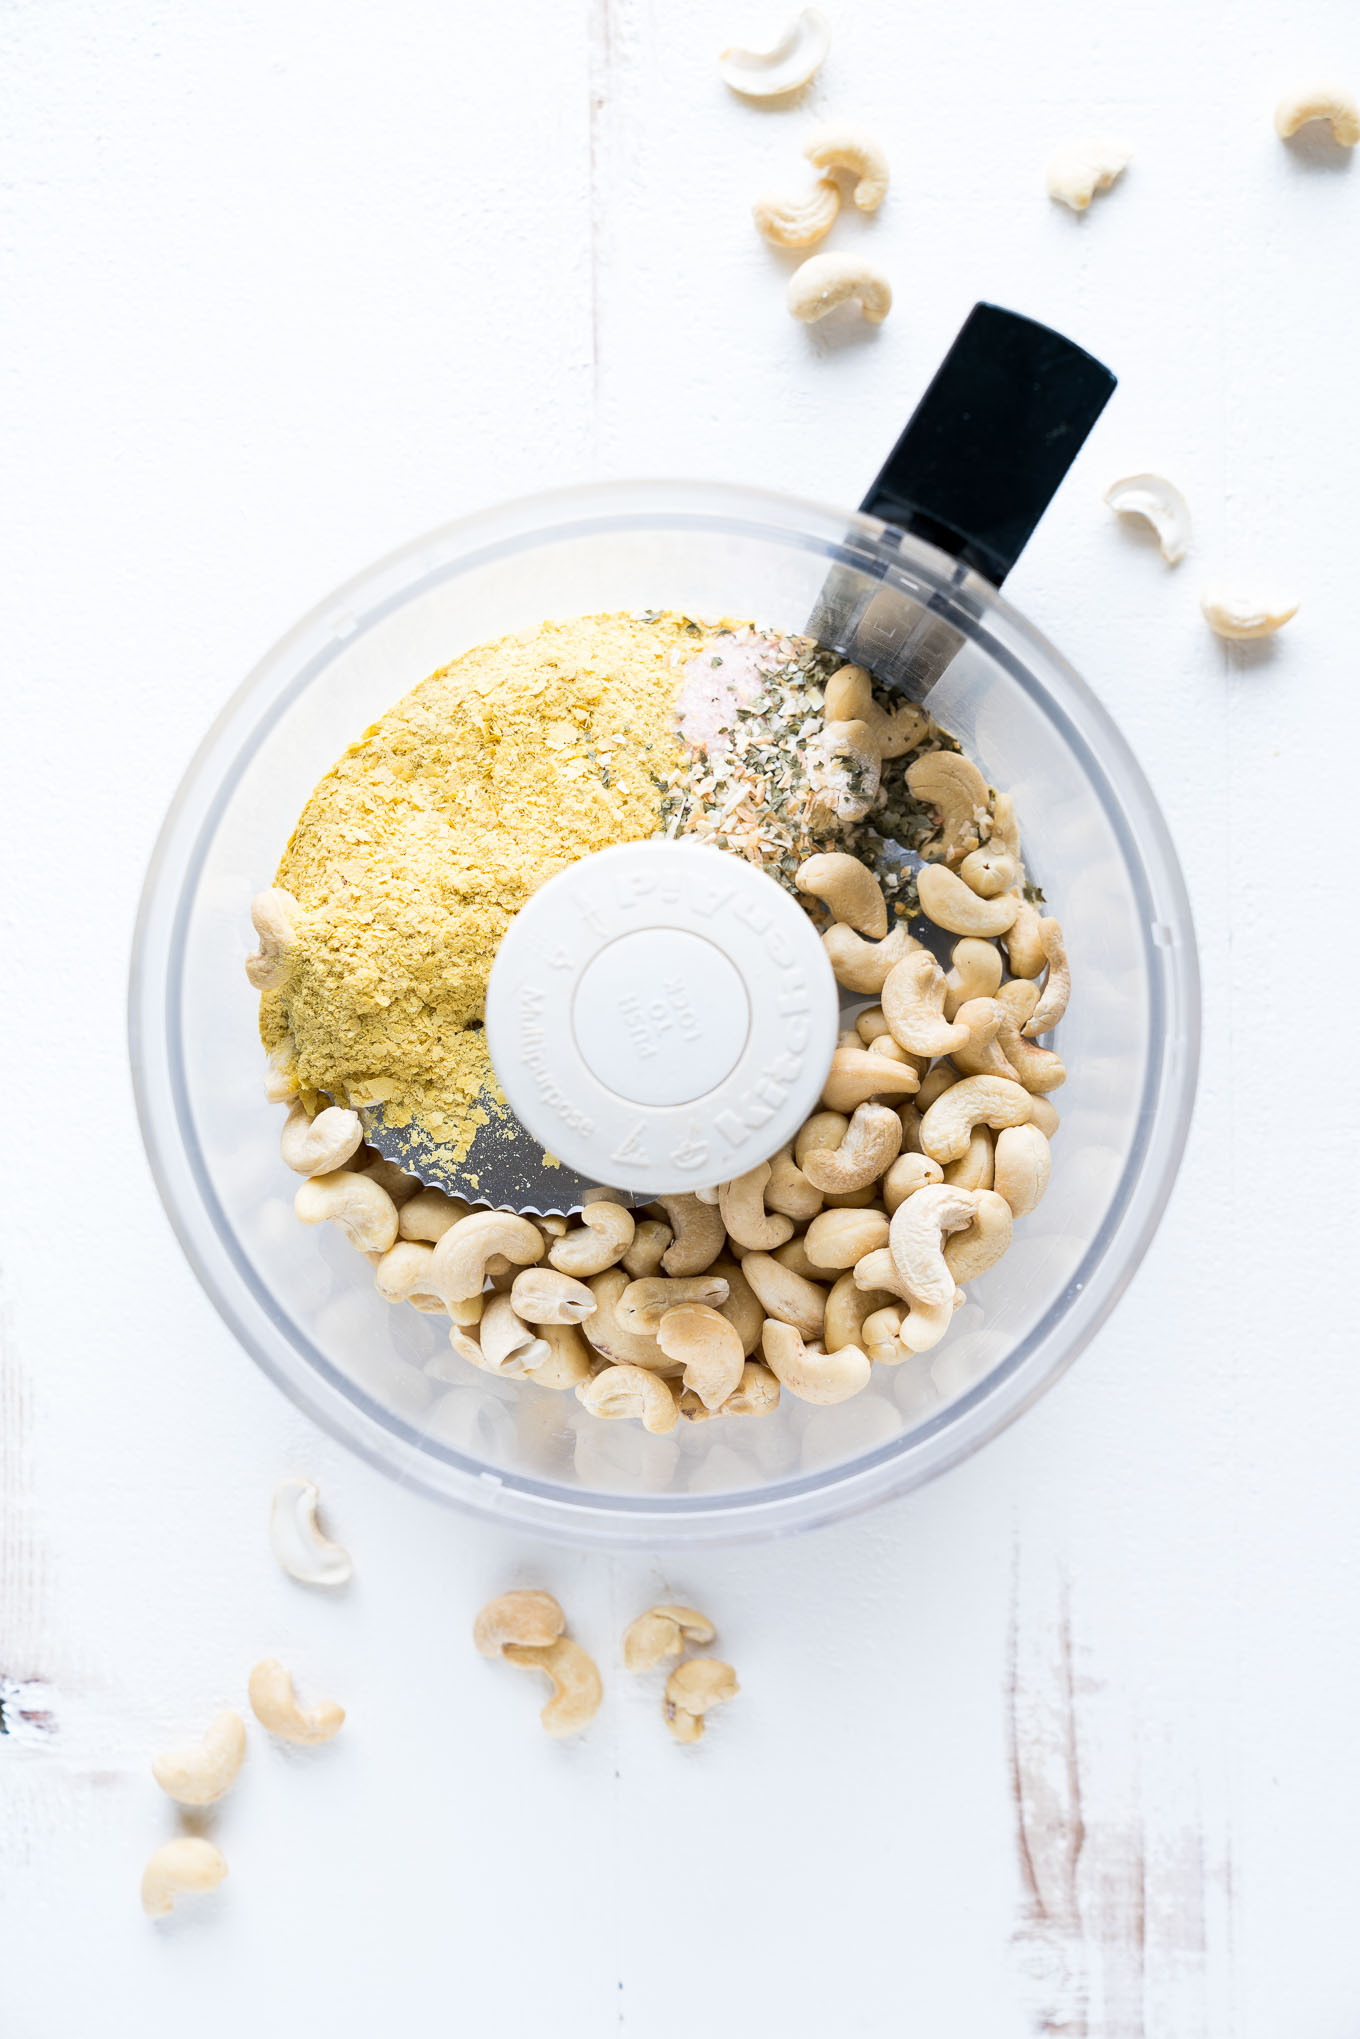 Vegan Parmesan Cheese in Food Processor